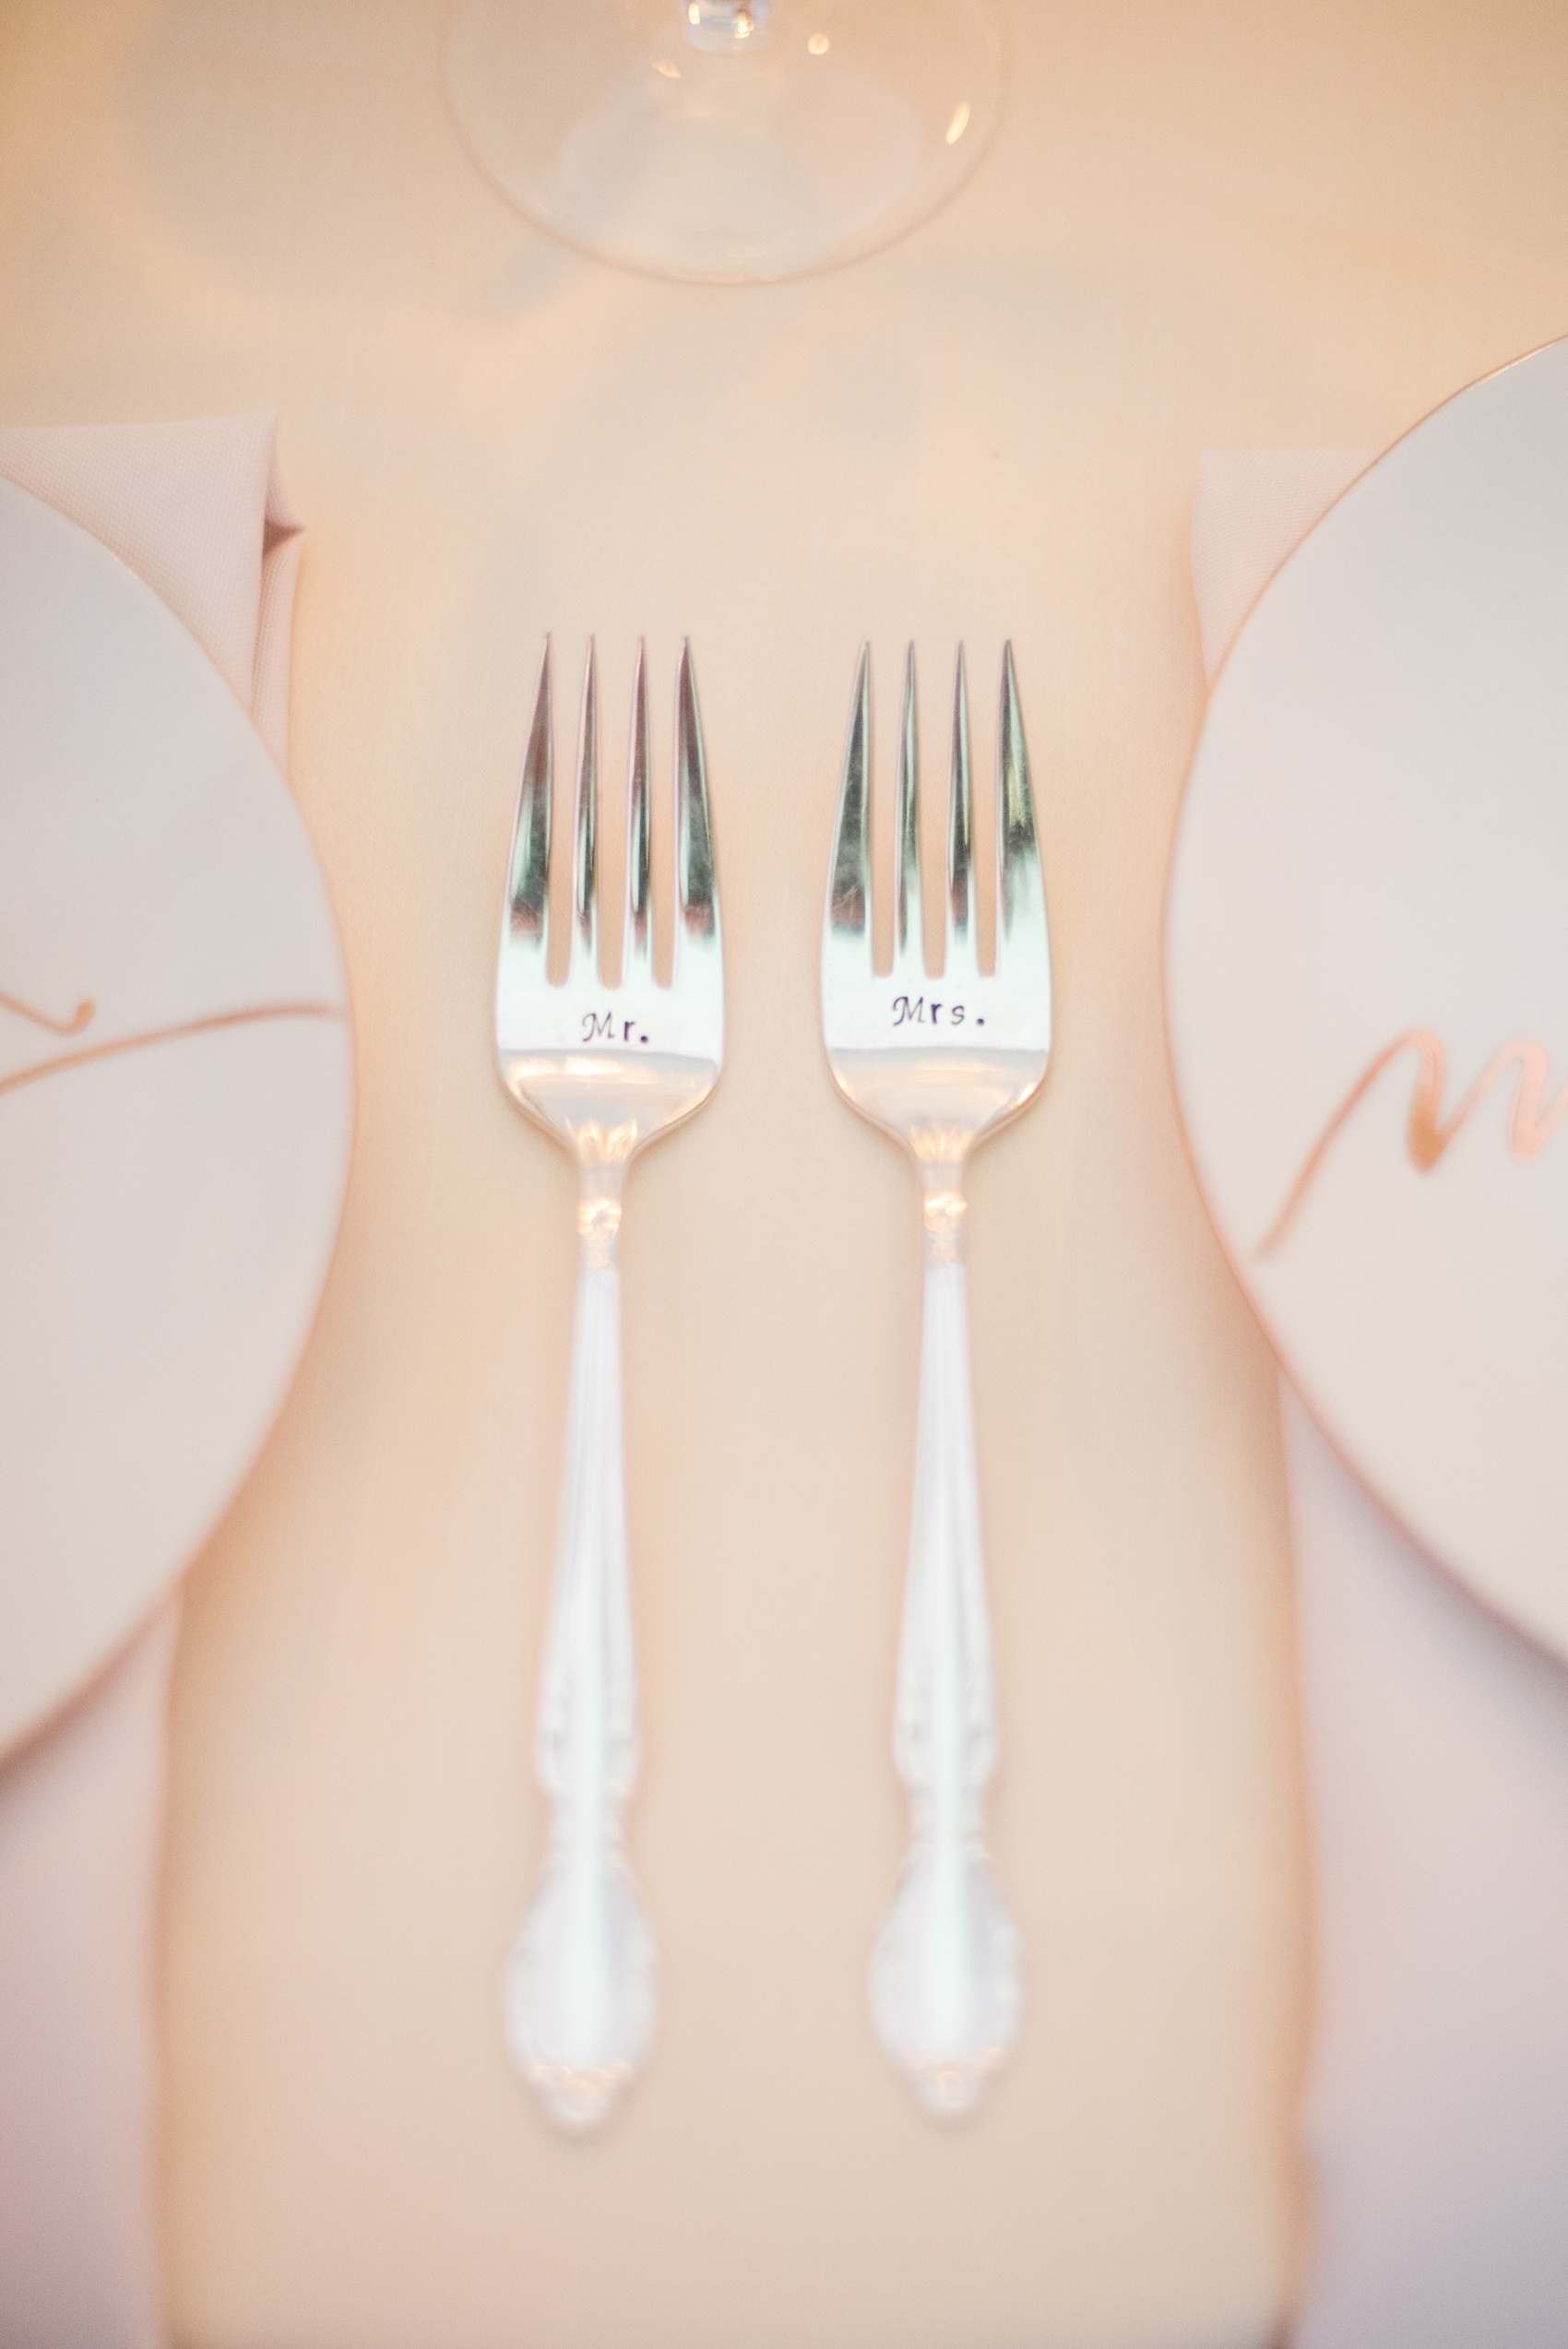 Mikkel Paige Photography photos of a luxury wedding in NYC. Image of couple's custom fork set.